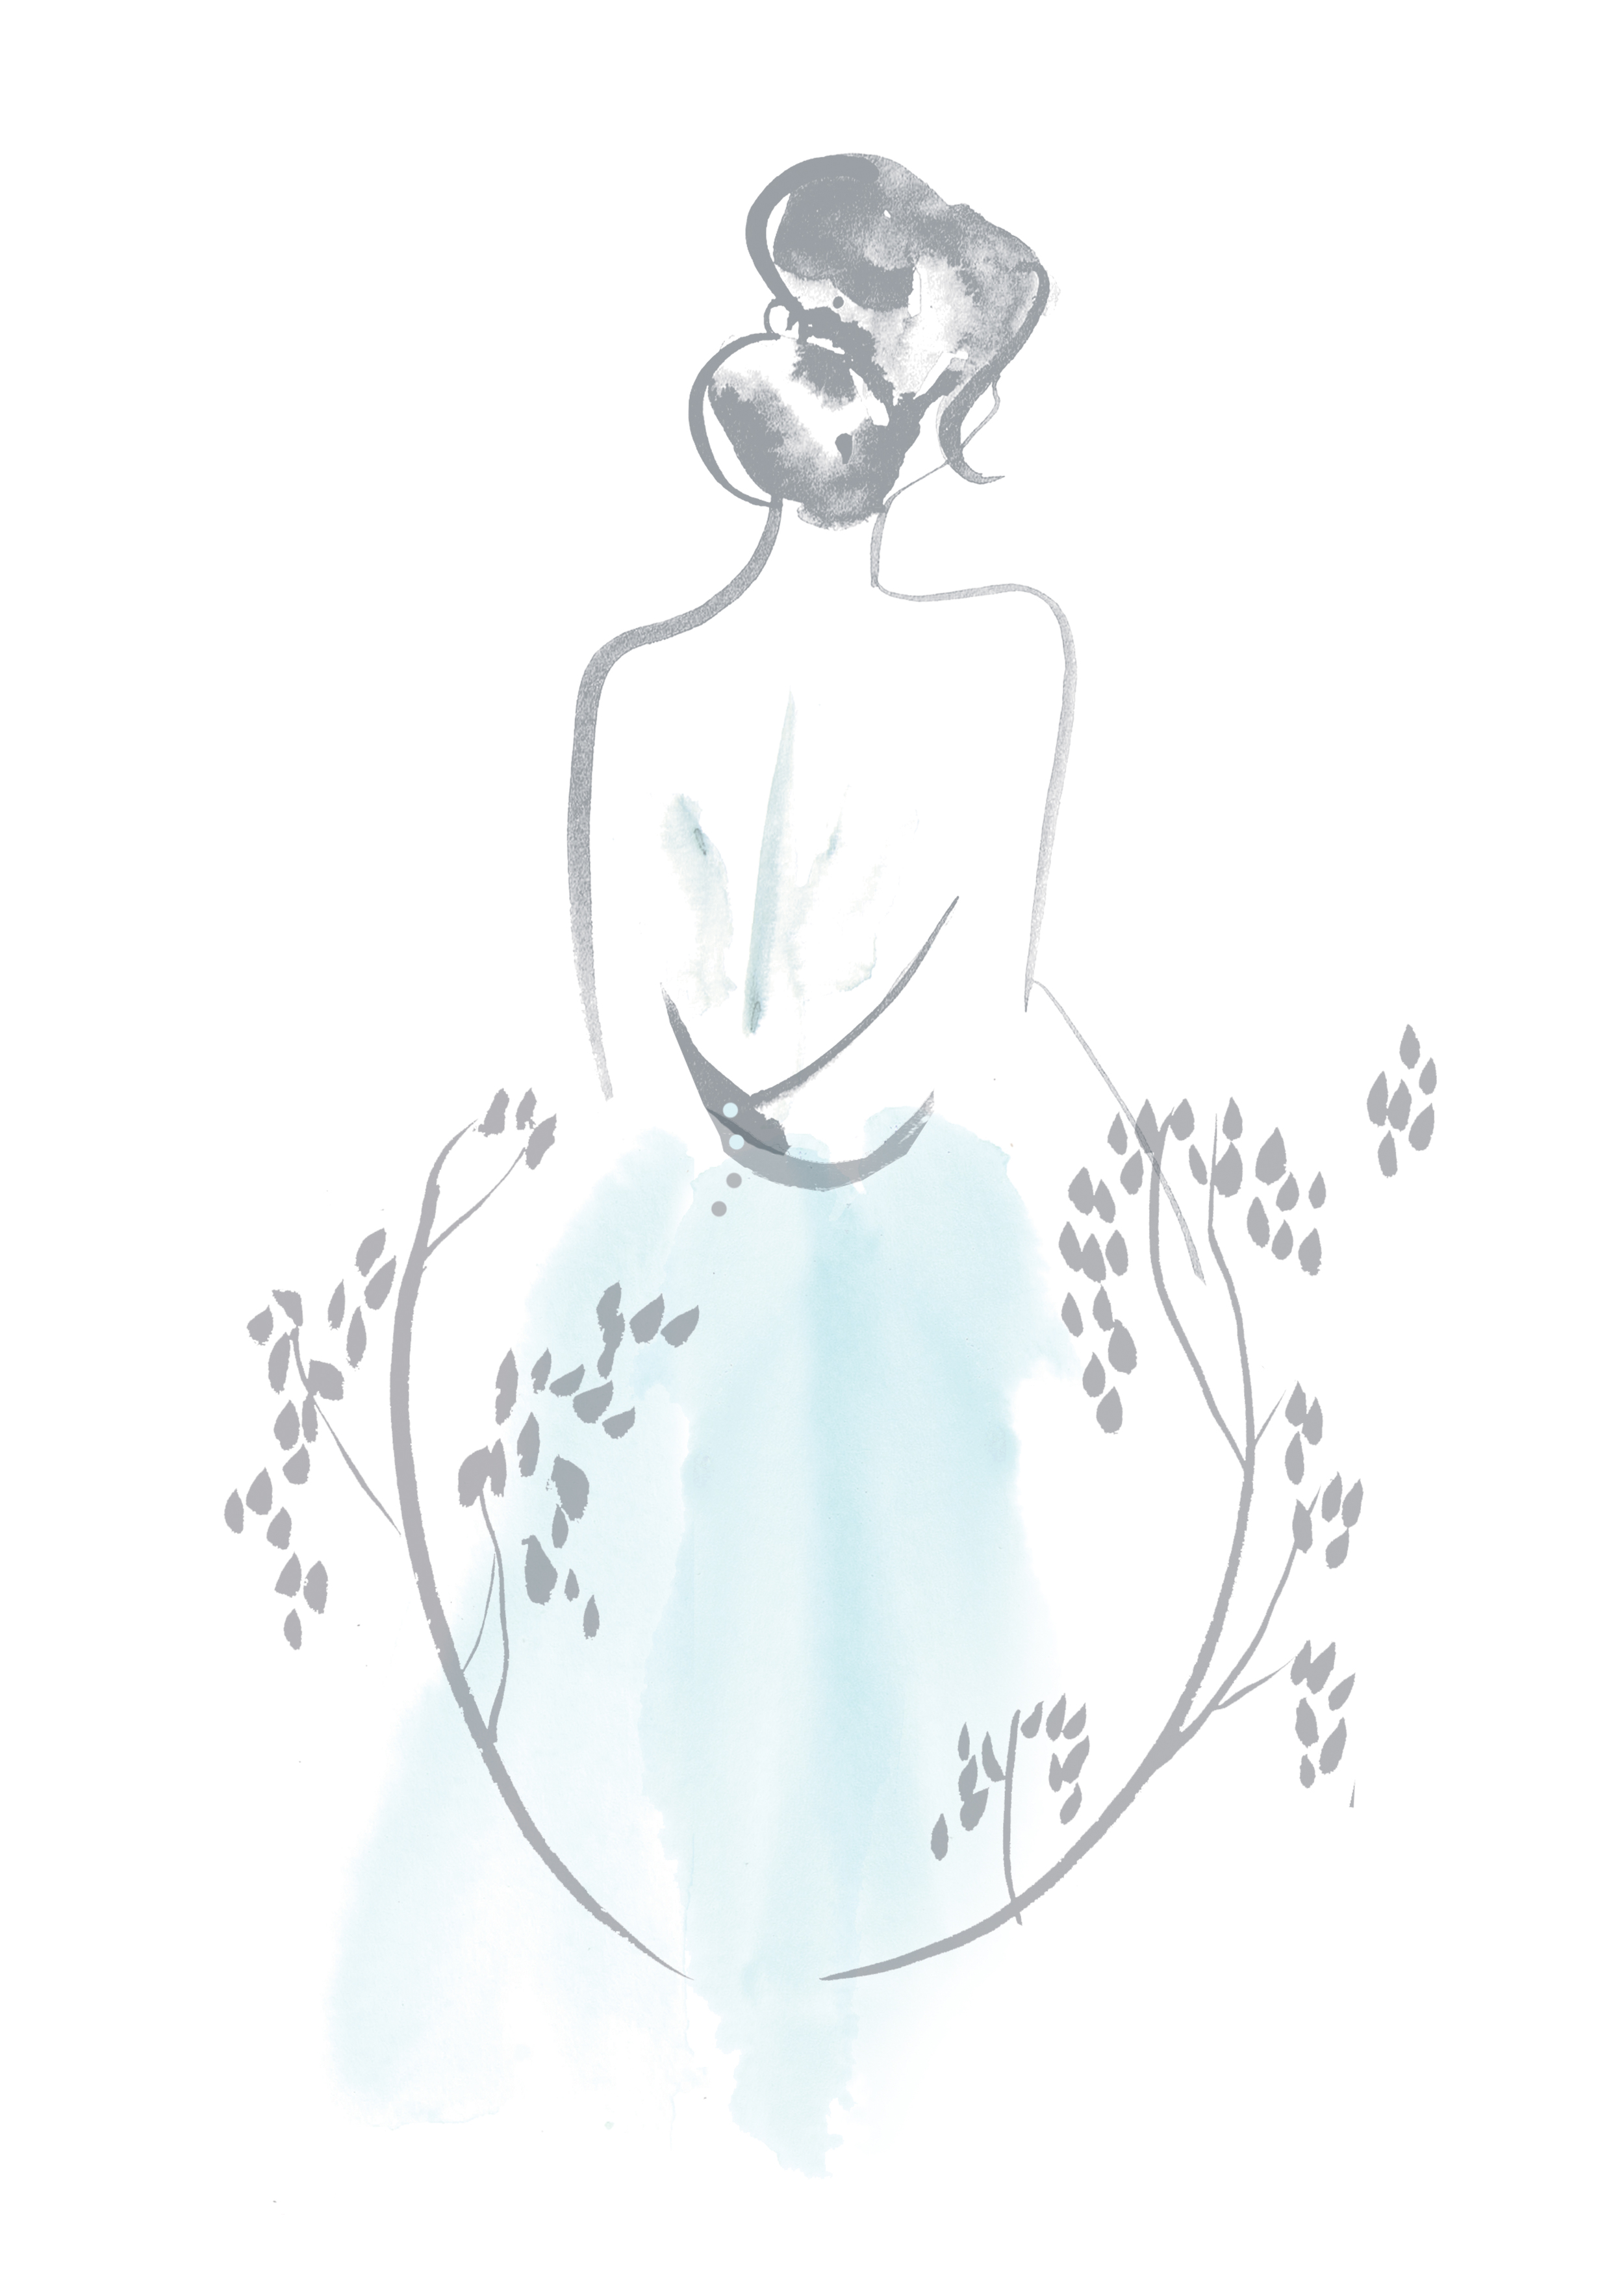 Final illustration by  Dearly Beloved  for Jessica Charleston